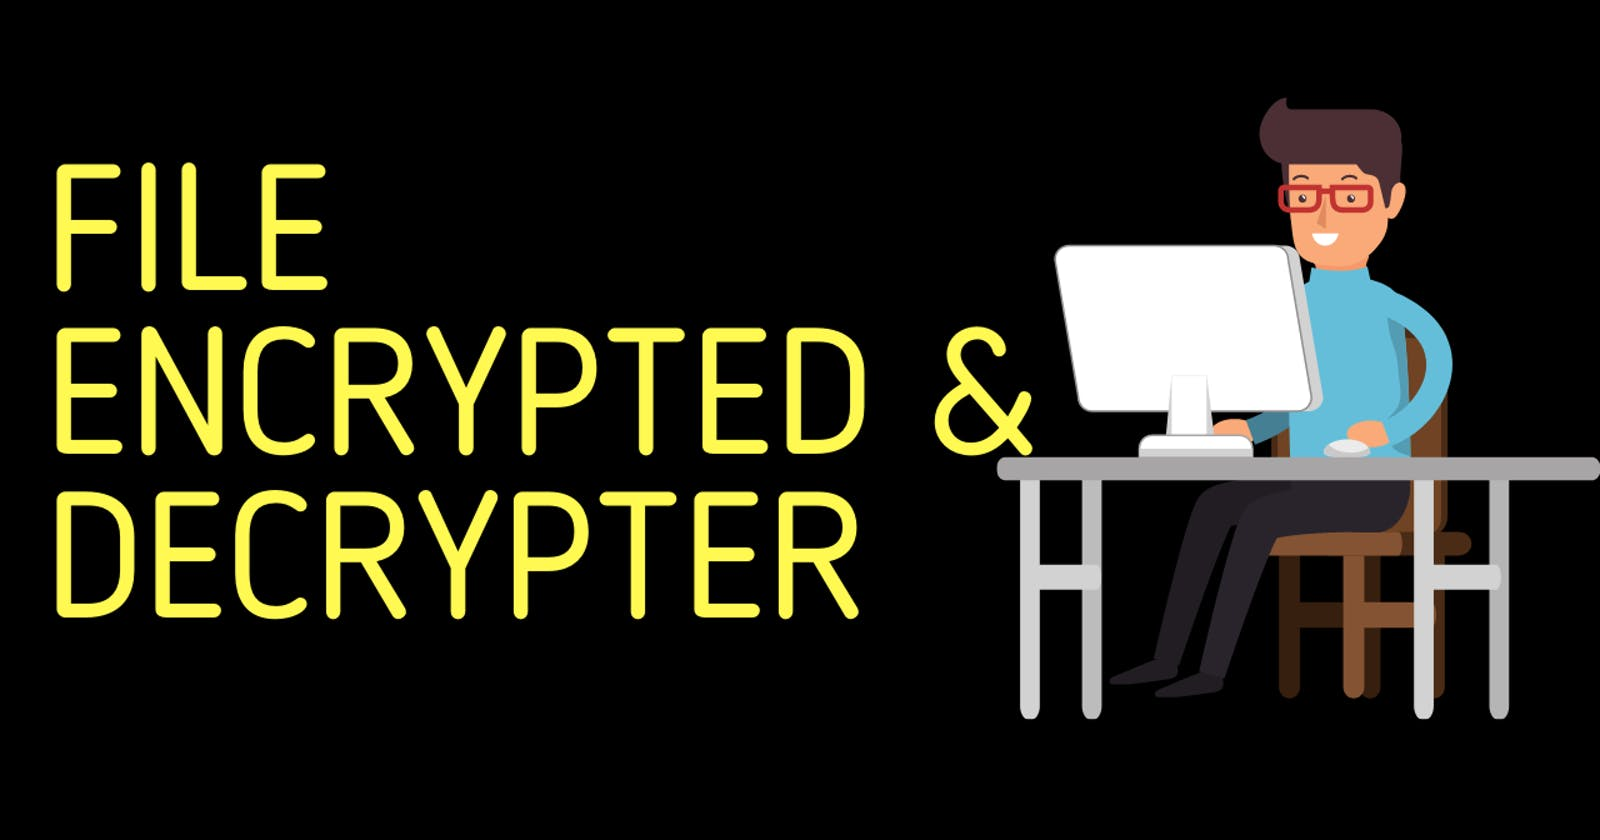 File Encrypter and Decrypter